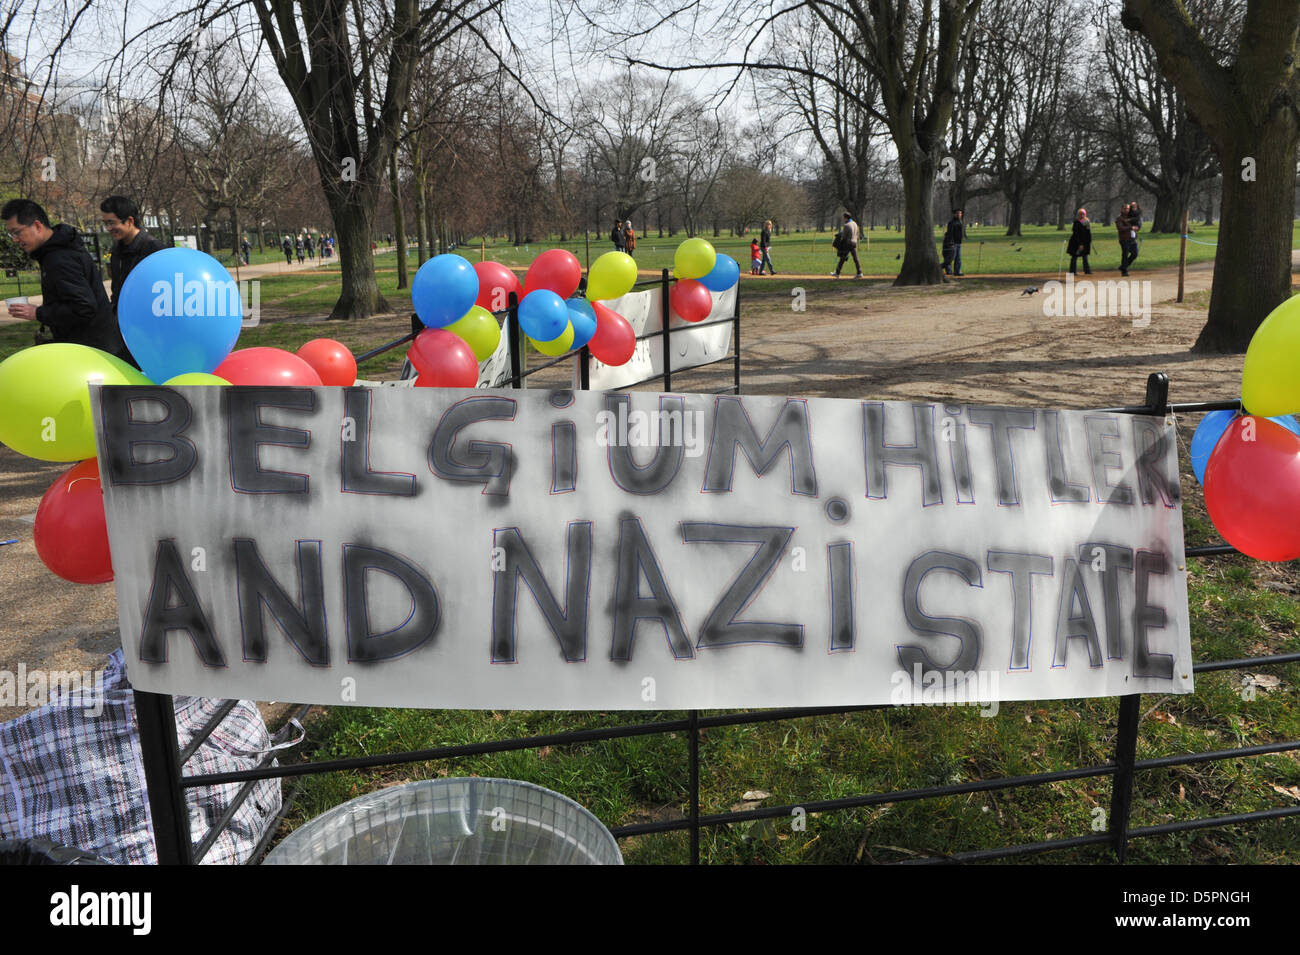 Hyde Park, London, UK. 7th April 2013. Signs and balloons at the small gathering in Hyde Park by Roma, Gypsy and Stock Photo